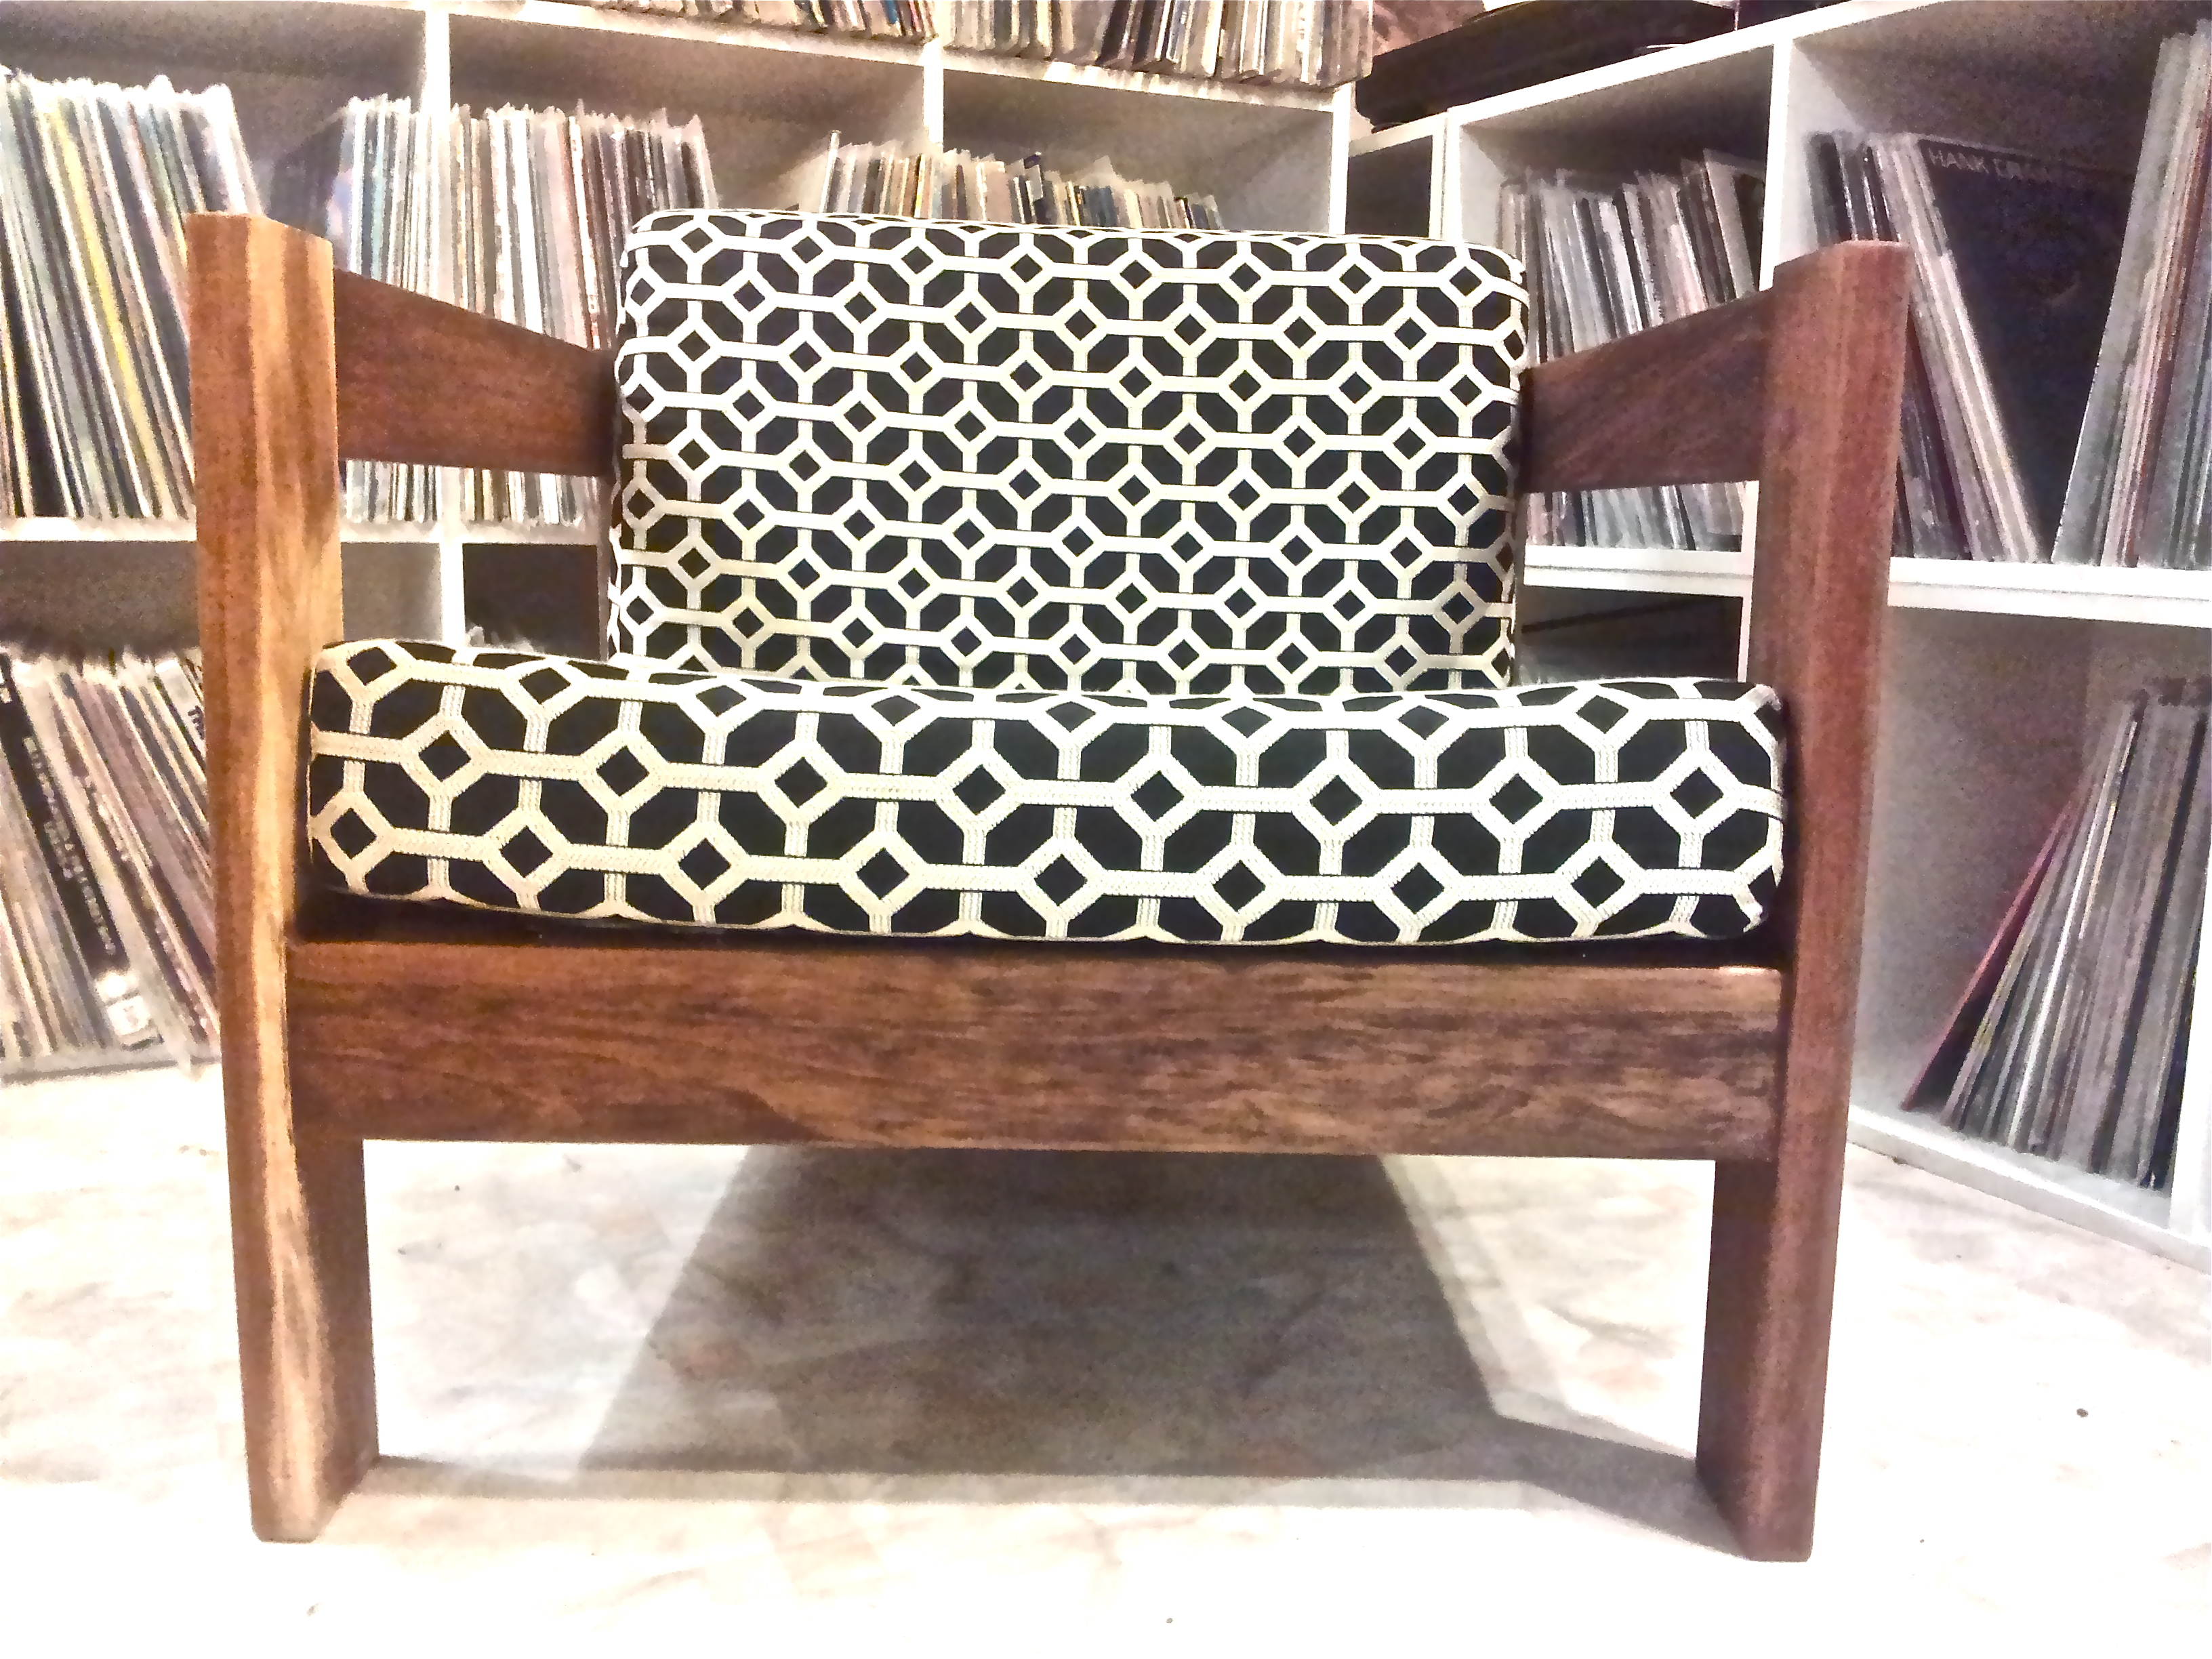 Upcycled And Refurbished Retro Vintage Chair In Designer